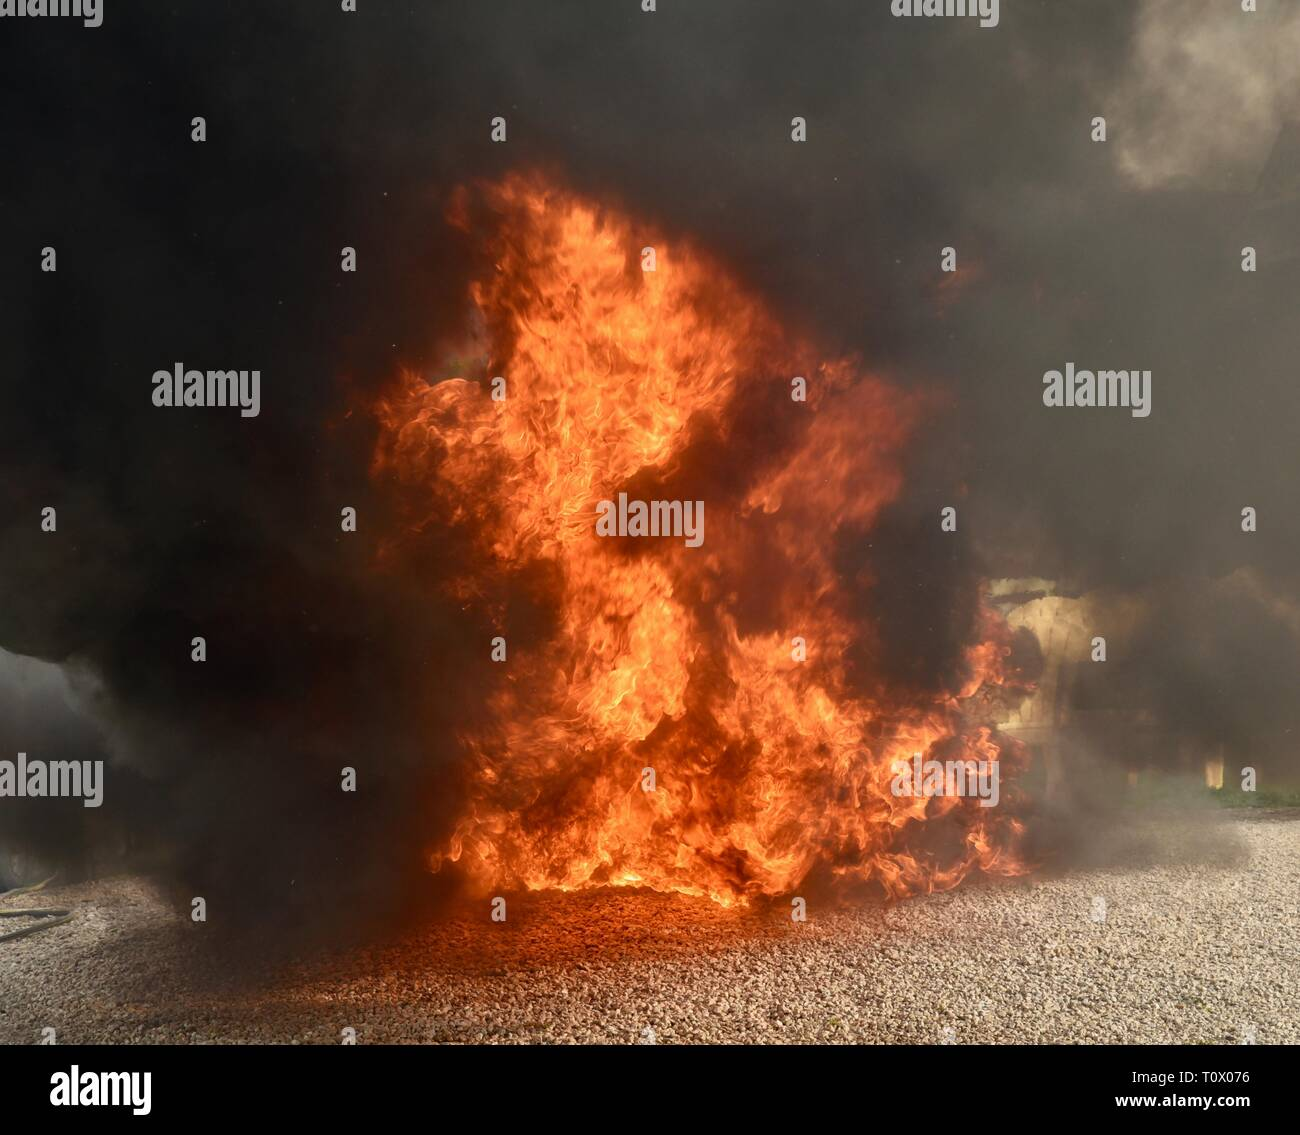 Explosive, dangerous inferno fire with undulating, dancing flames and blackening smoke rising and billowing cloud and plumes of smoke. Stock Photo